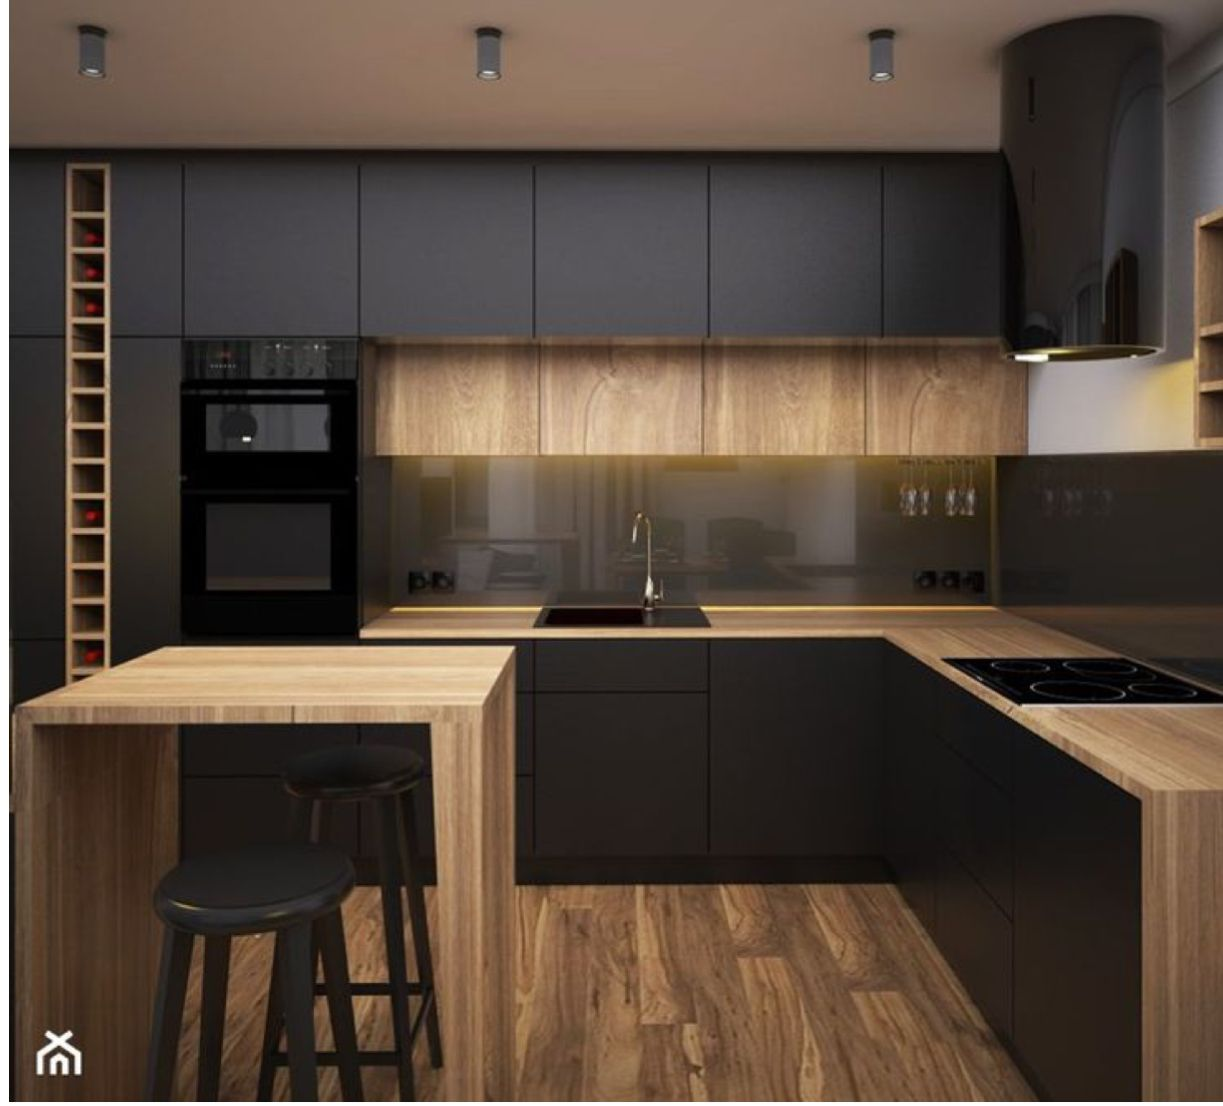 Pin by Walid on Kitchens  Kitchen furniture design, Kitchen room